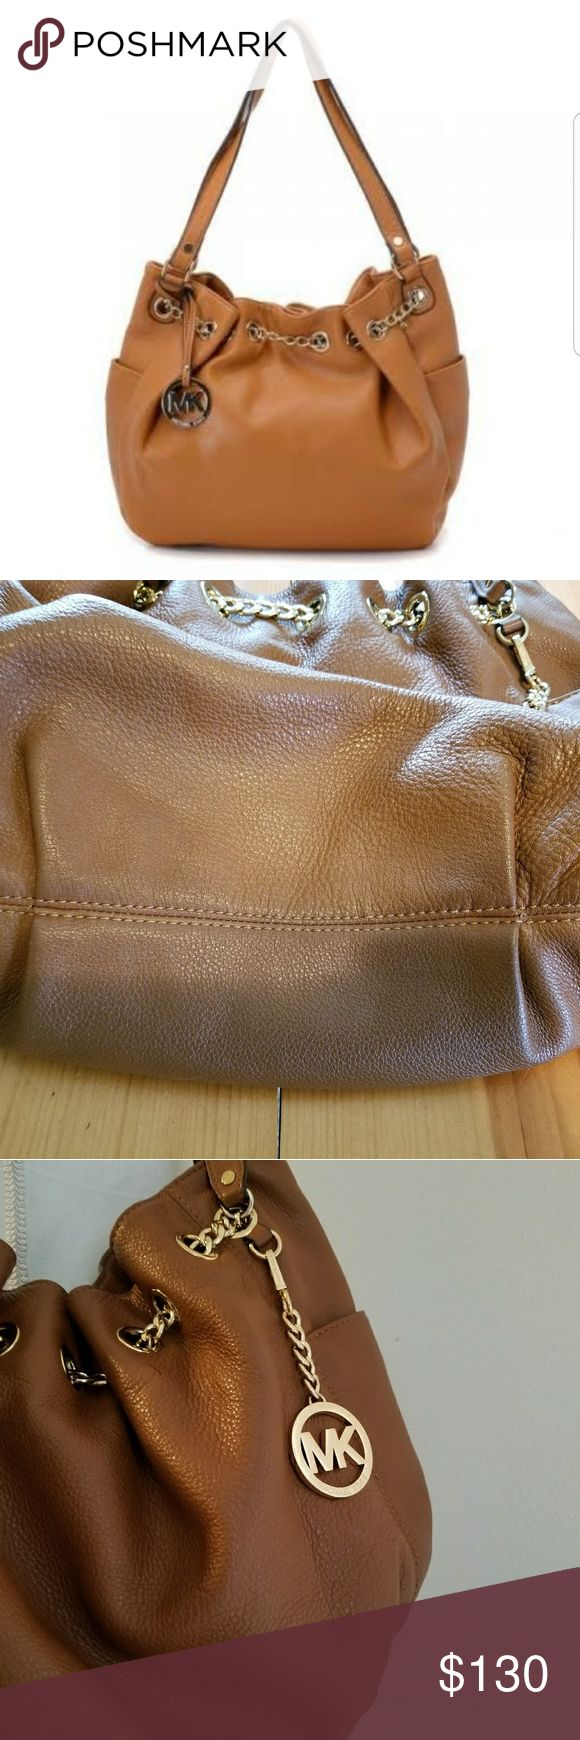 """Michael Kors Bag Beautiful MK Bag with side pockets and gold chain detail. Multiple pockets inside and key chain strap.  Brown in color Approximate measurements  12""""×16"""" Opening 14"""" Michael Kors Bags"""